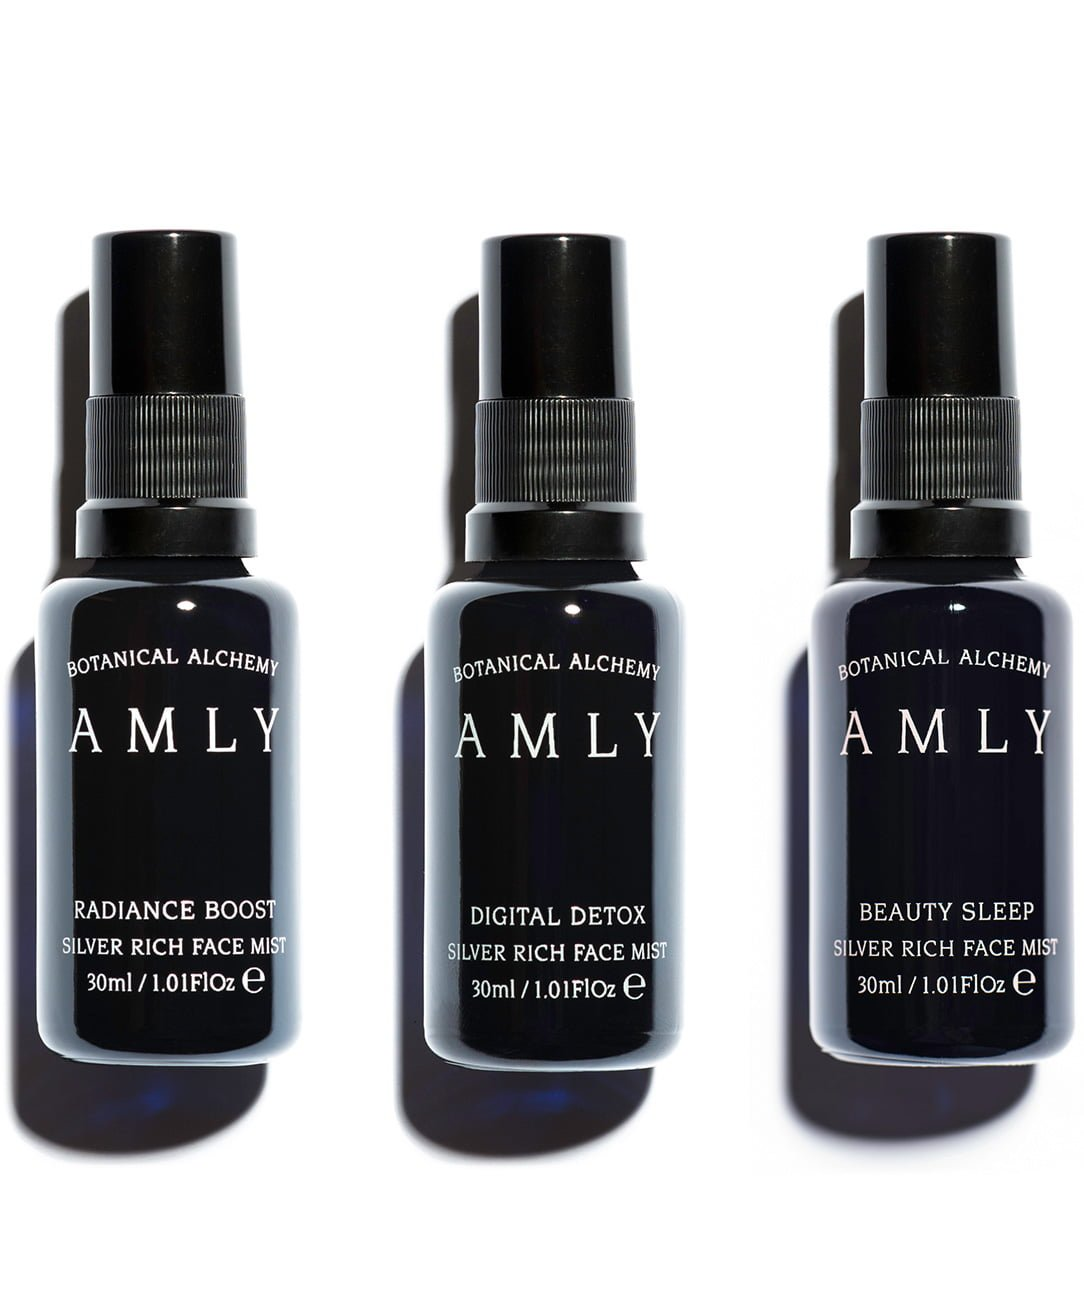 AMLY 30ml radiance boost face mist, AMLY 30ml Digital Detox face mist, AMLY 30ml beauty sleep face mist